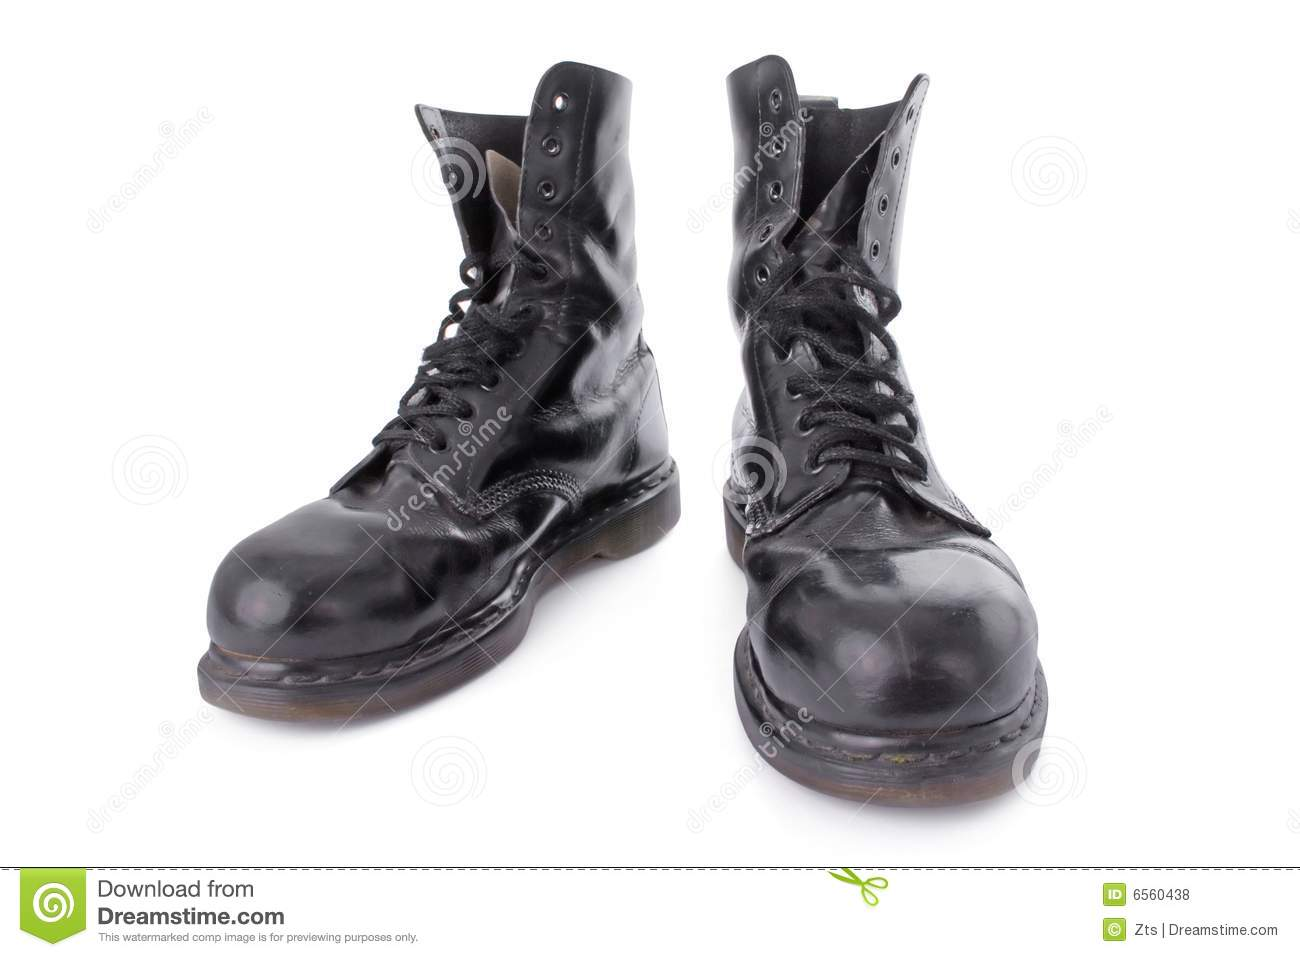 Black Leather Work Boots 9unqhdd2